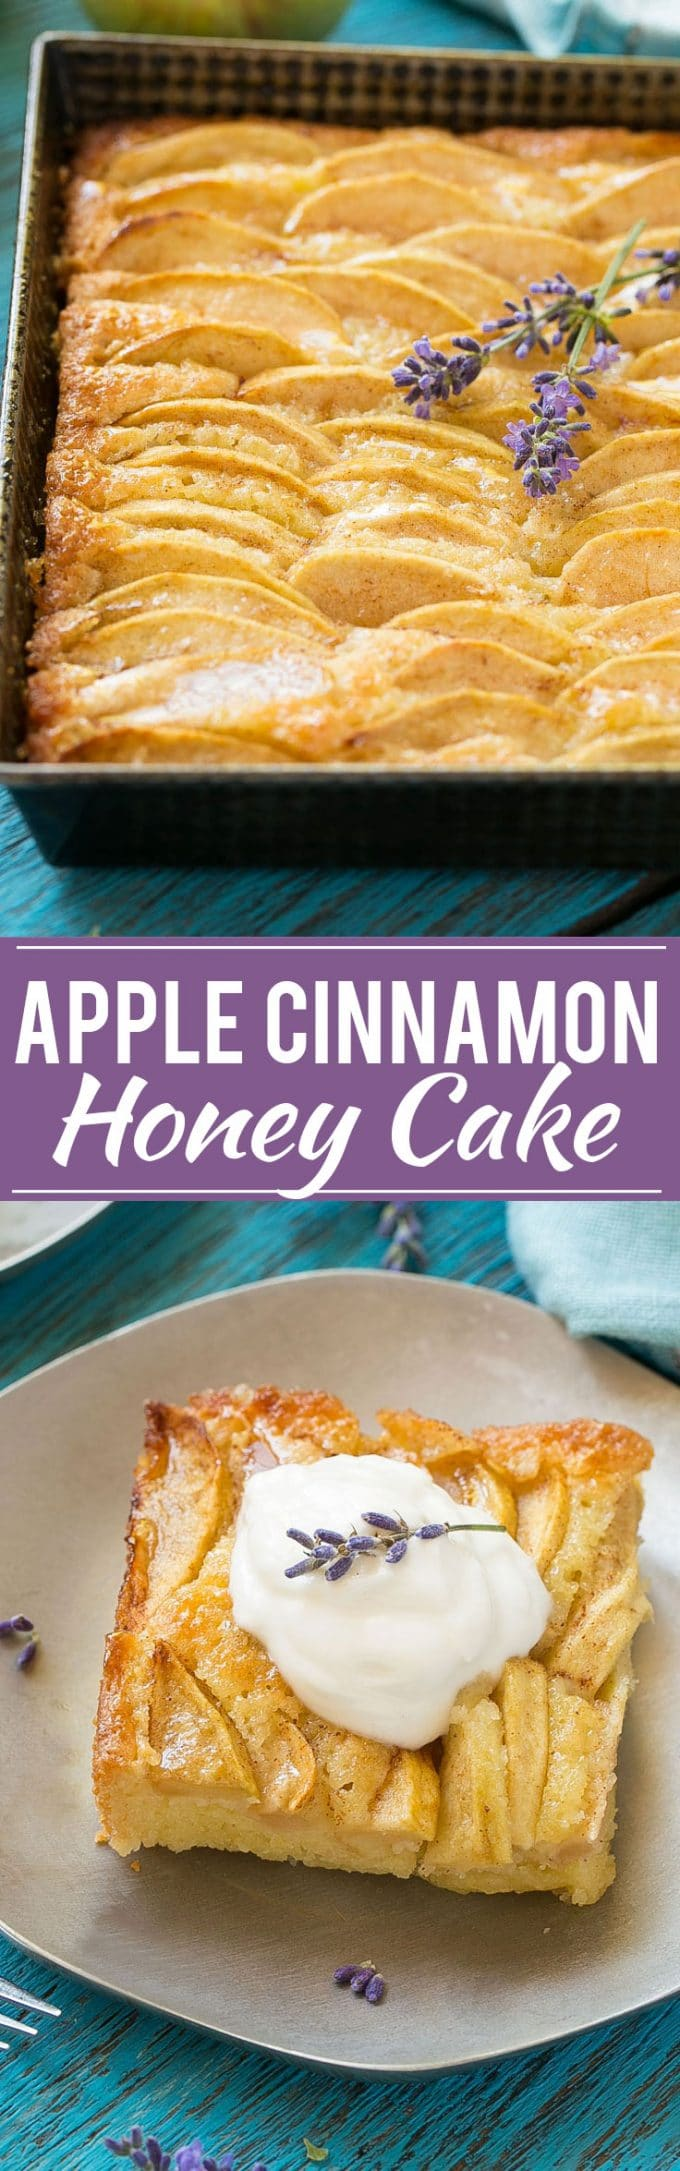 Apple Cinnamon Honey Cake Recipe | Apple Cinnamon Honey Cake | Apple Cake | Best Apple Cinnamon Honey Cake